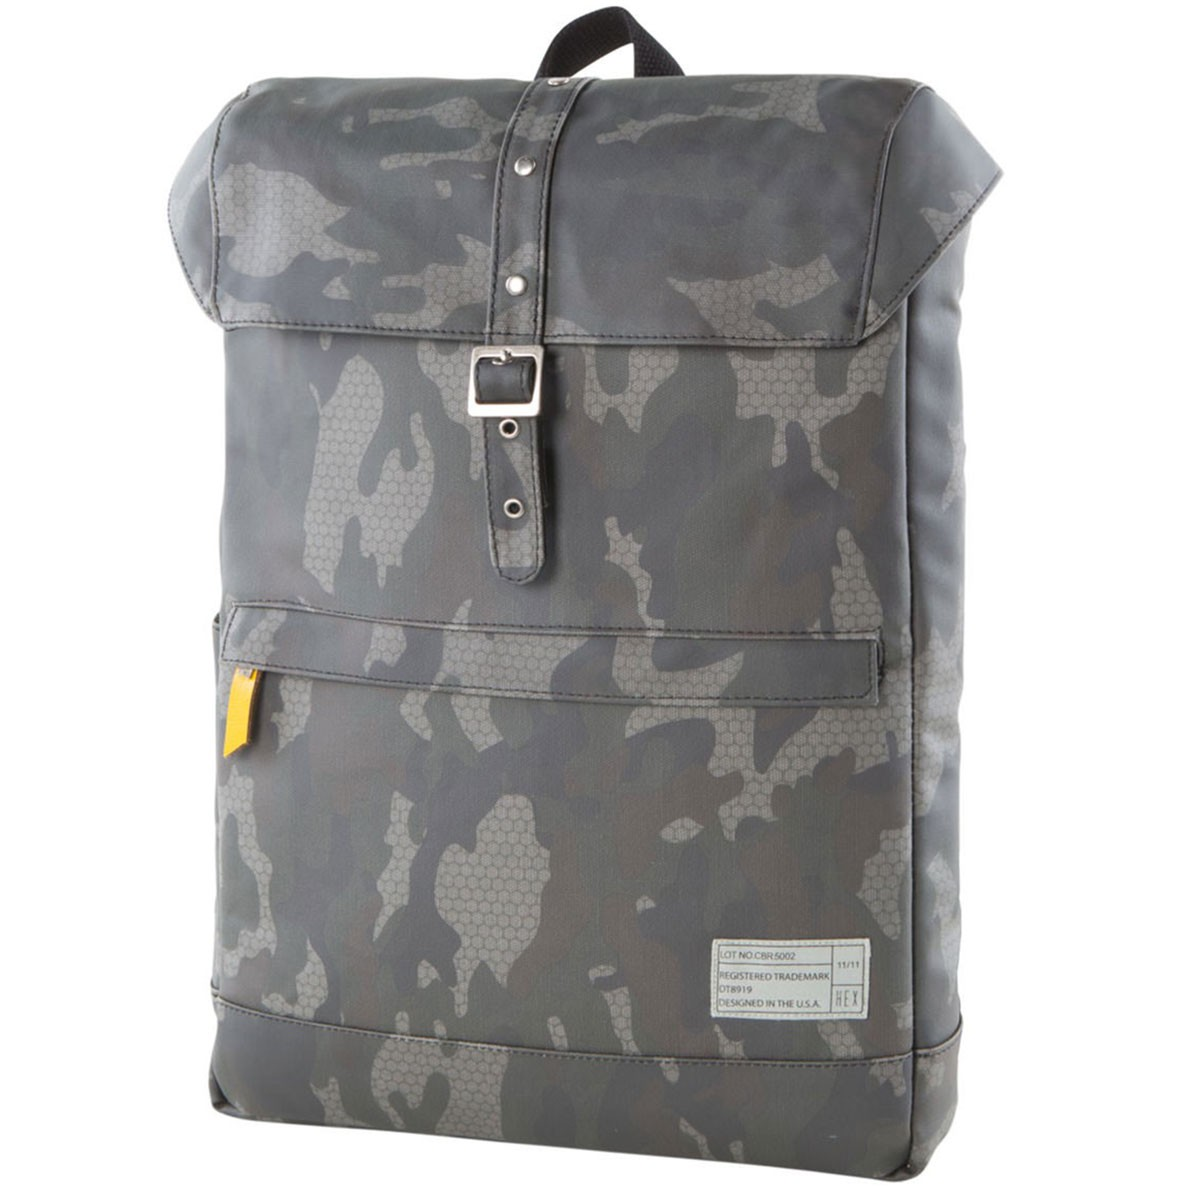 Hex Alliance Backpack - Camouflage